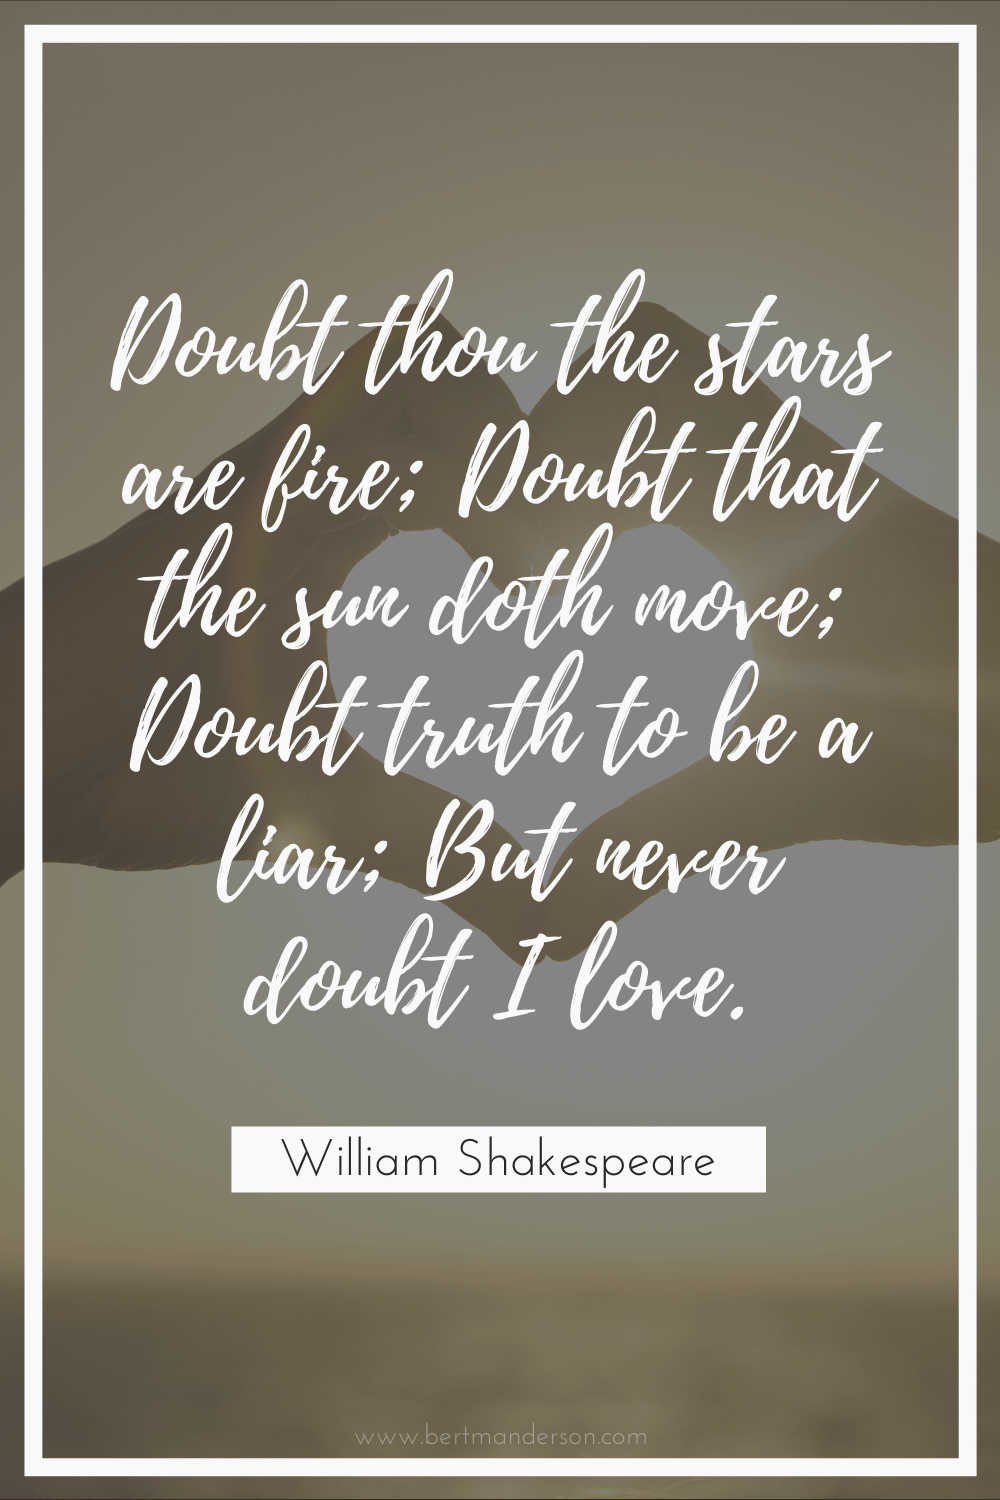 """""""Doubt thou the stars are fire; Doubt that the sun doth move; Doubt truth to be a liar; But never doubt I love."""" William Shakespeare, 50 of the best romantic quotes"""